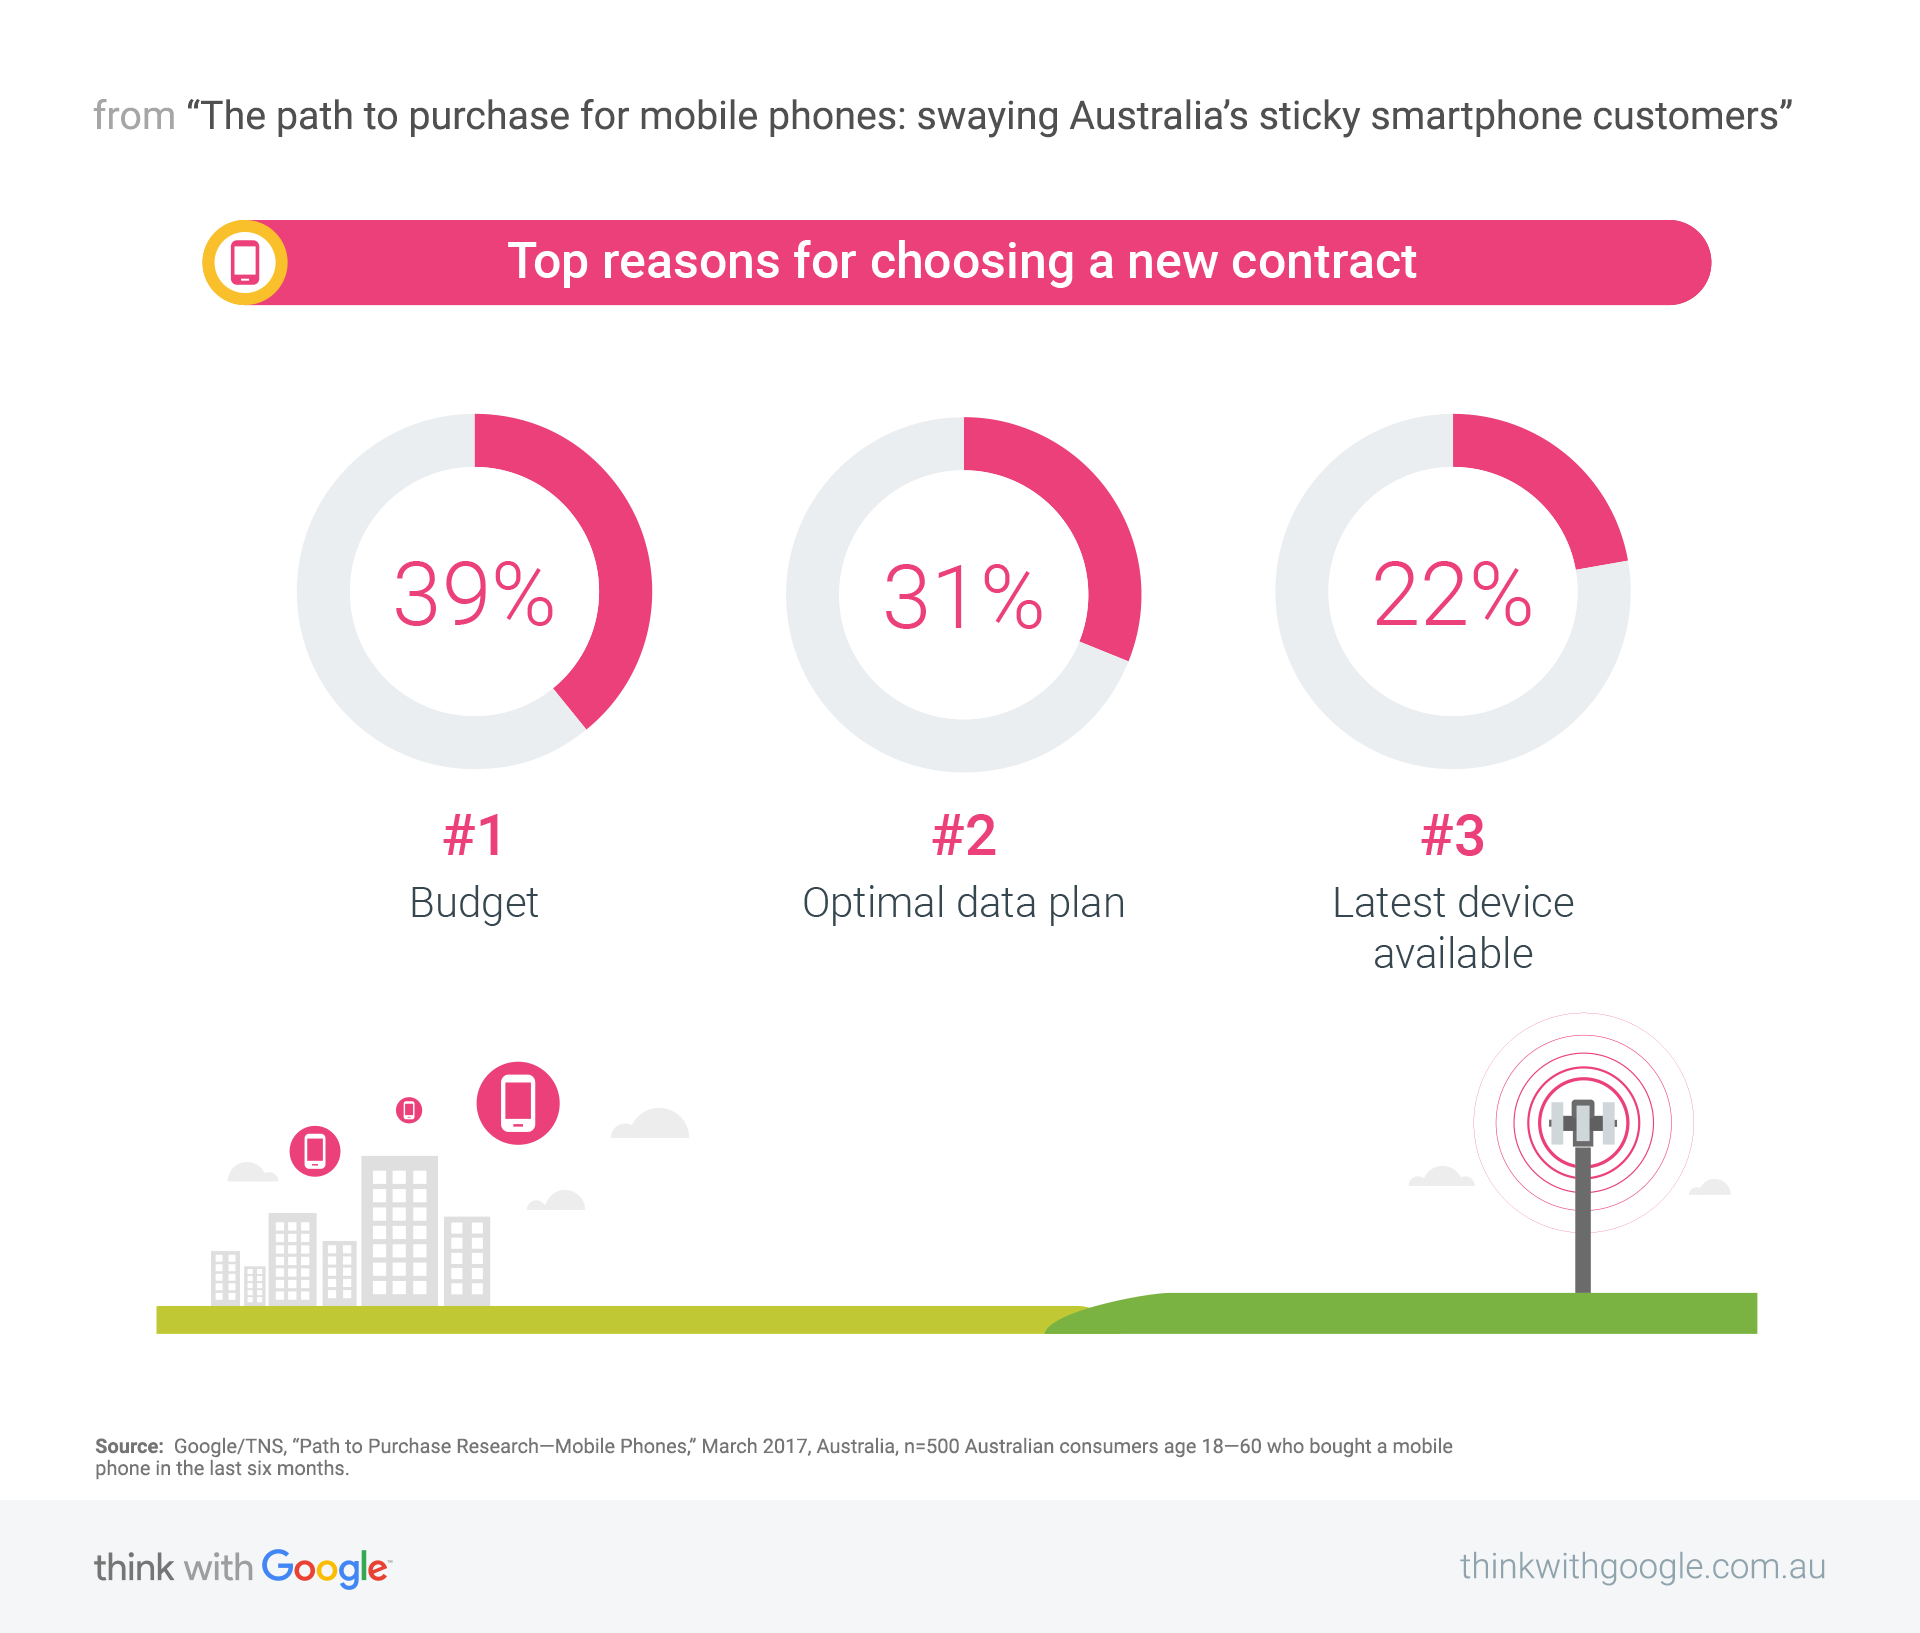 The path to purchase for mobile phones: swaying Australia's